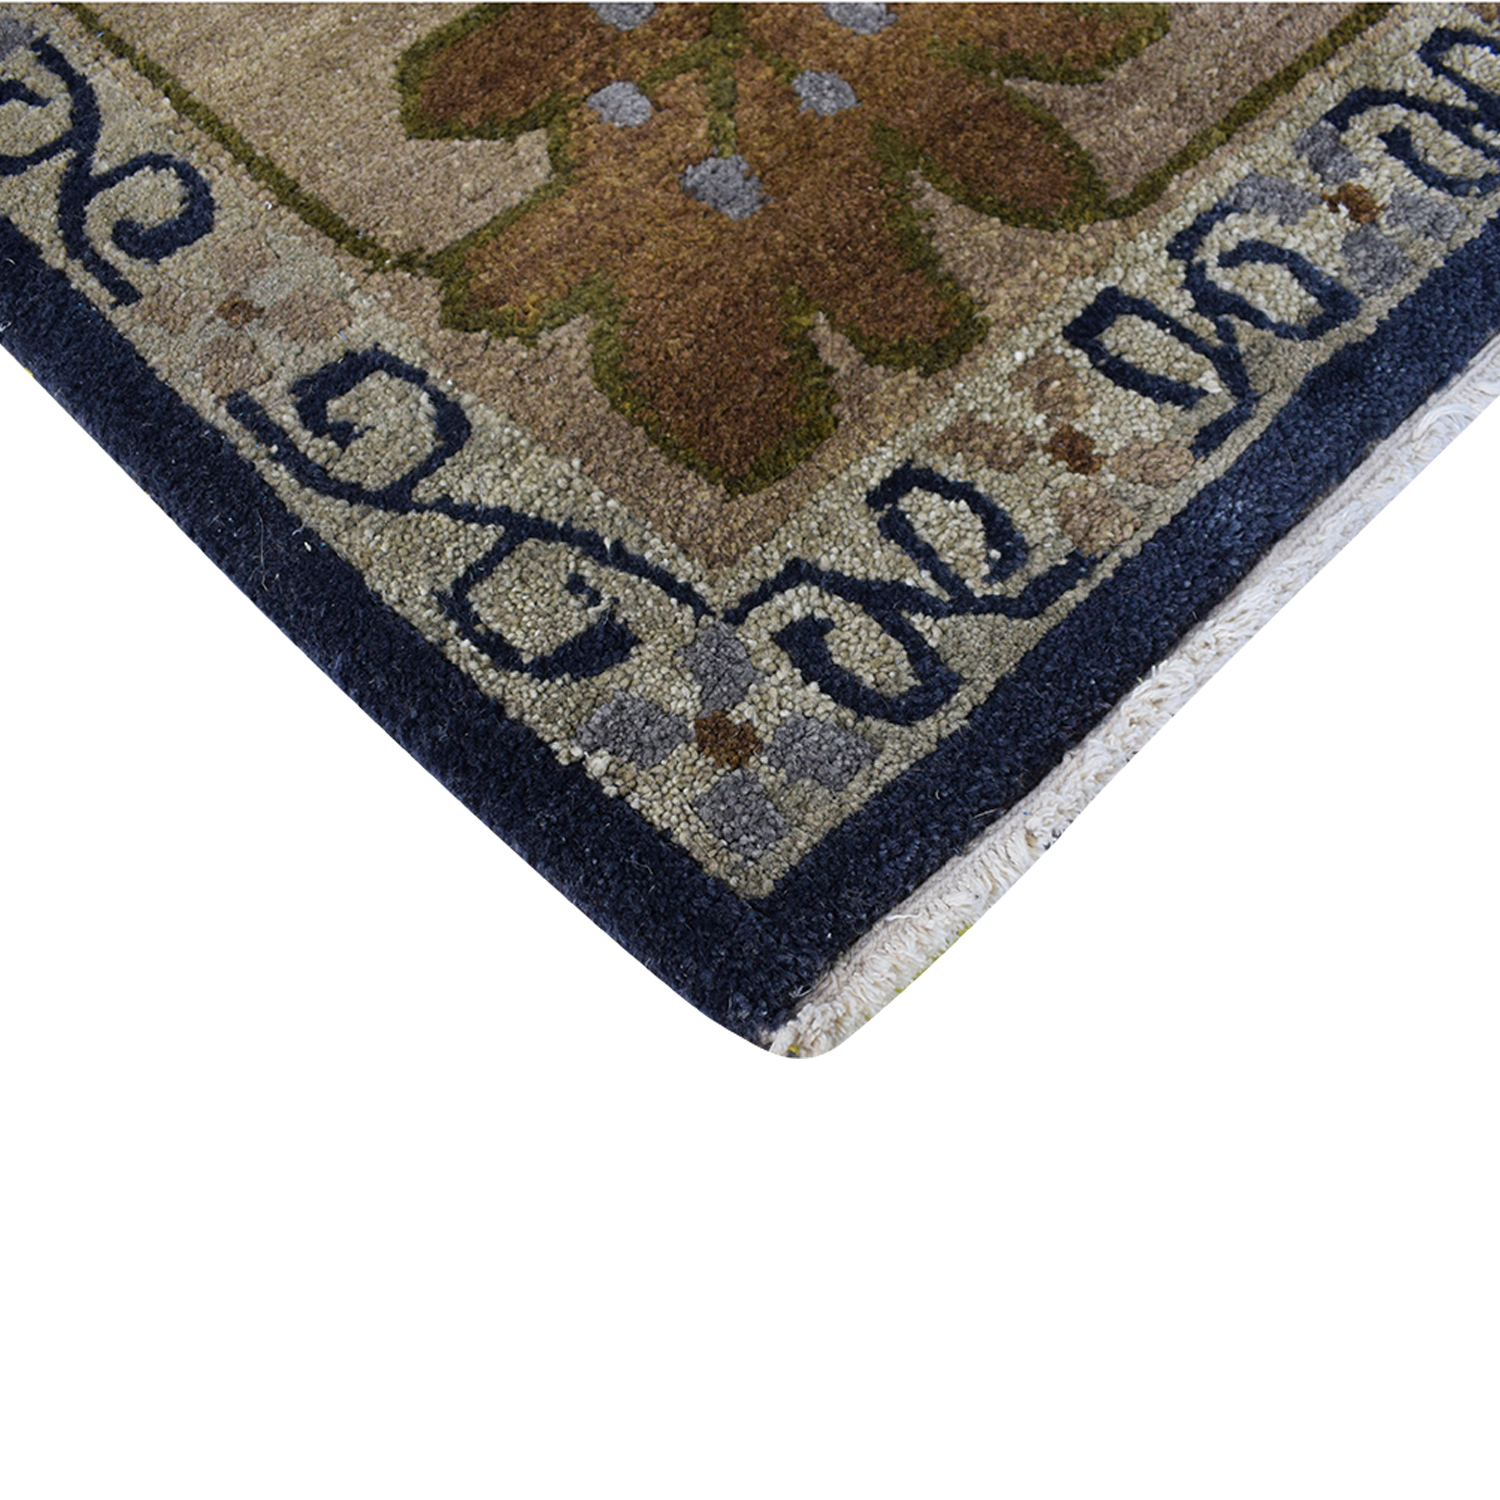 ABC Carpet & Home ABC Carpet & Home Rug dimensions